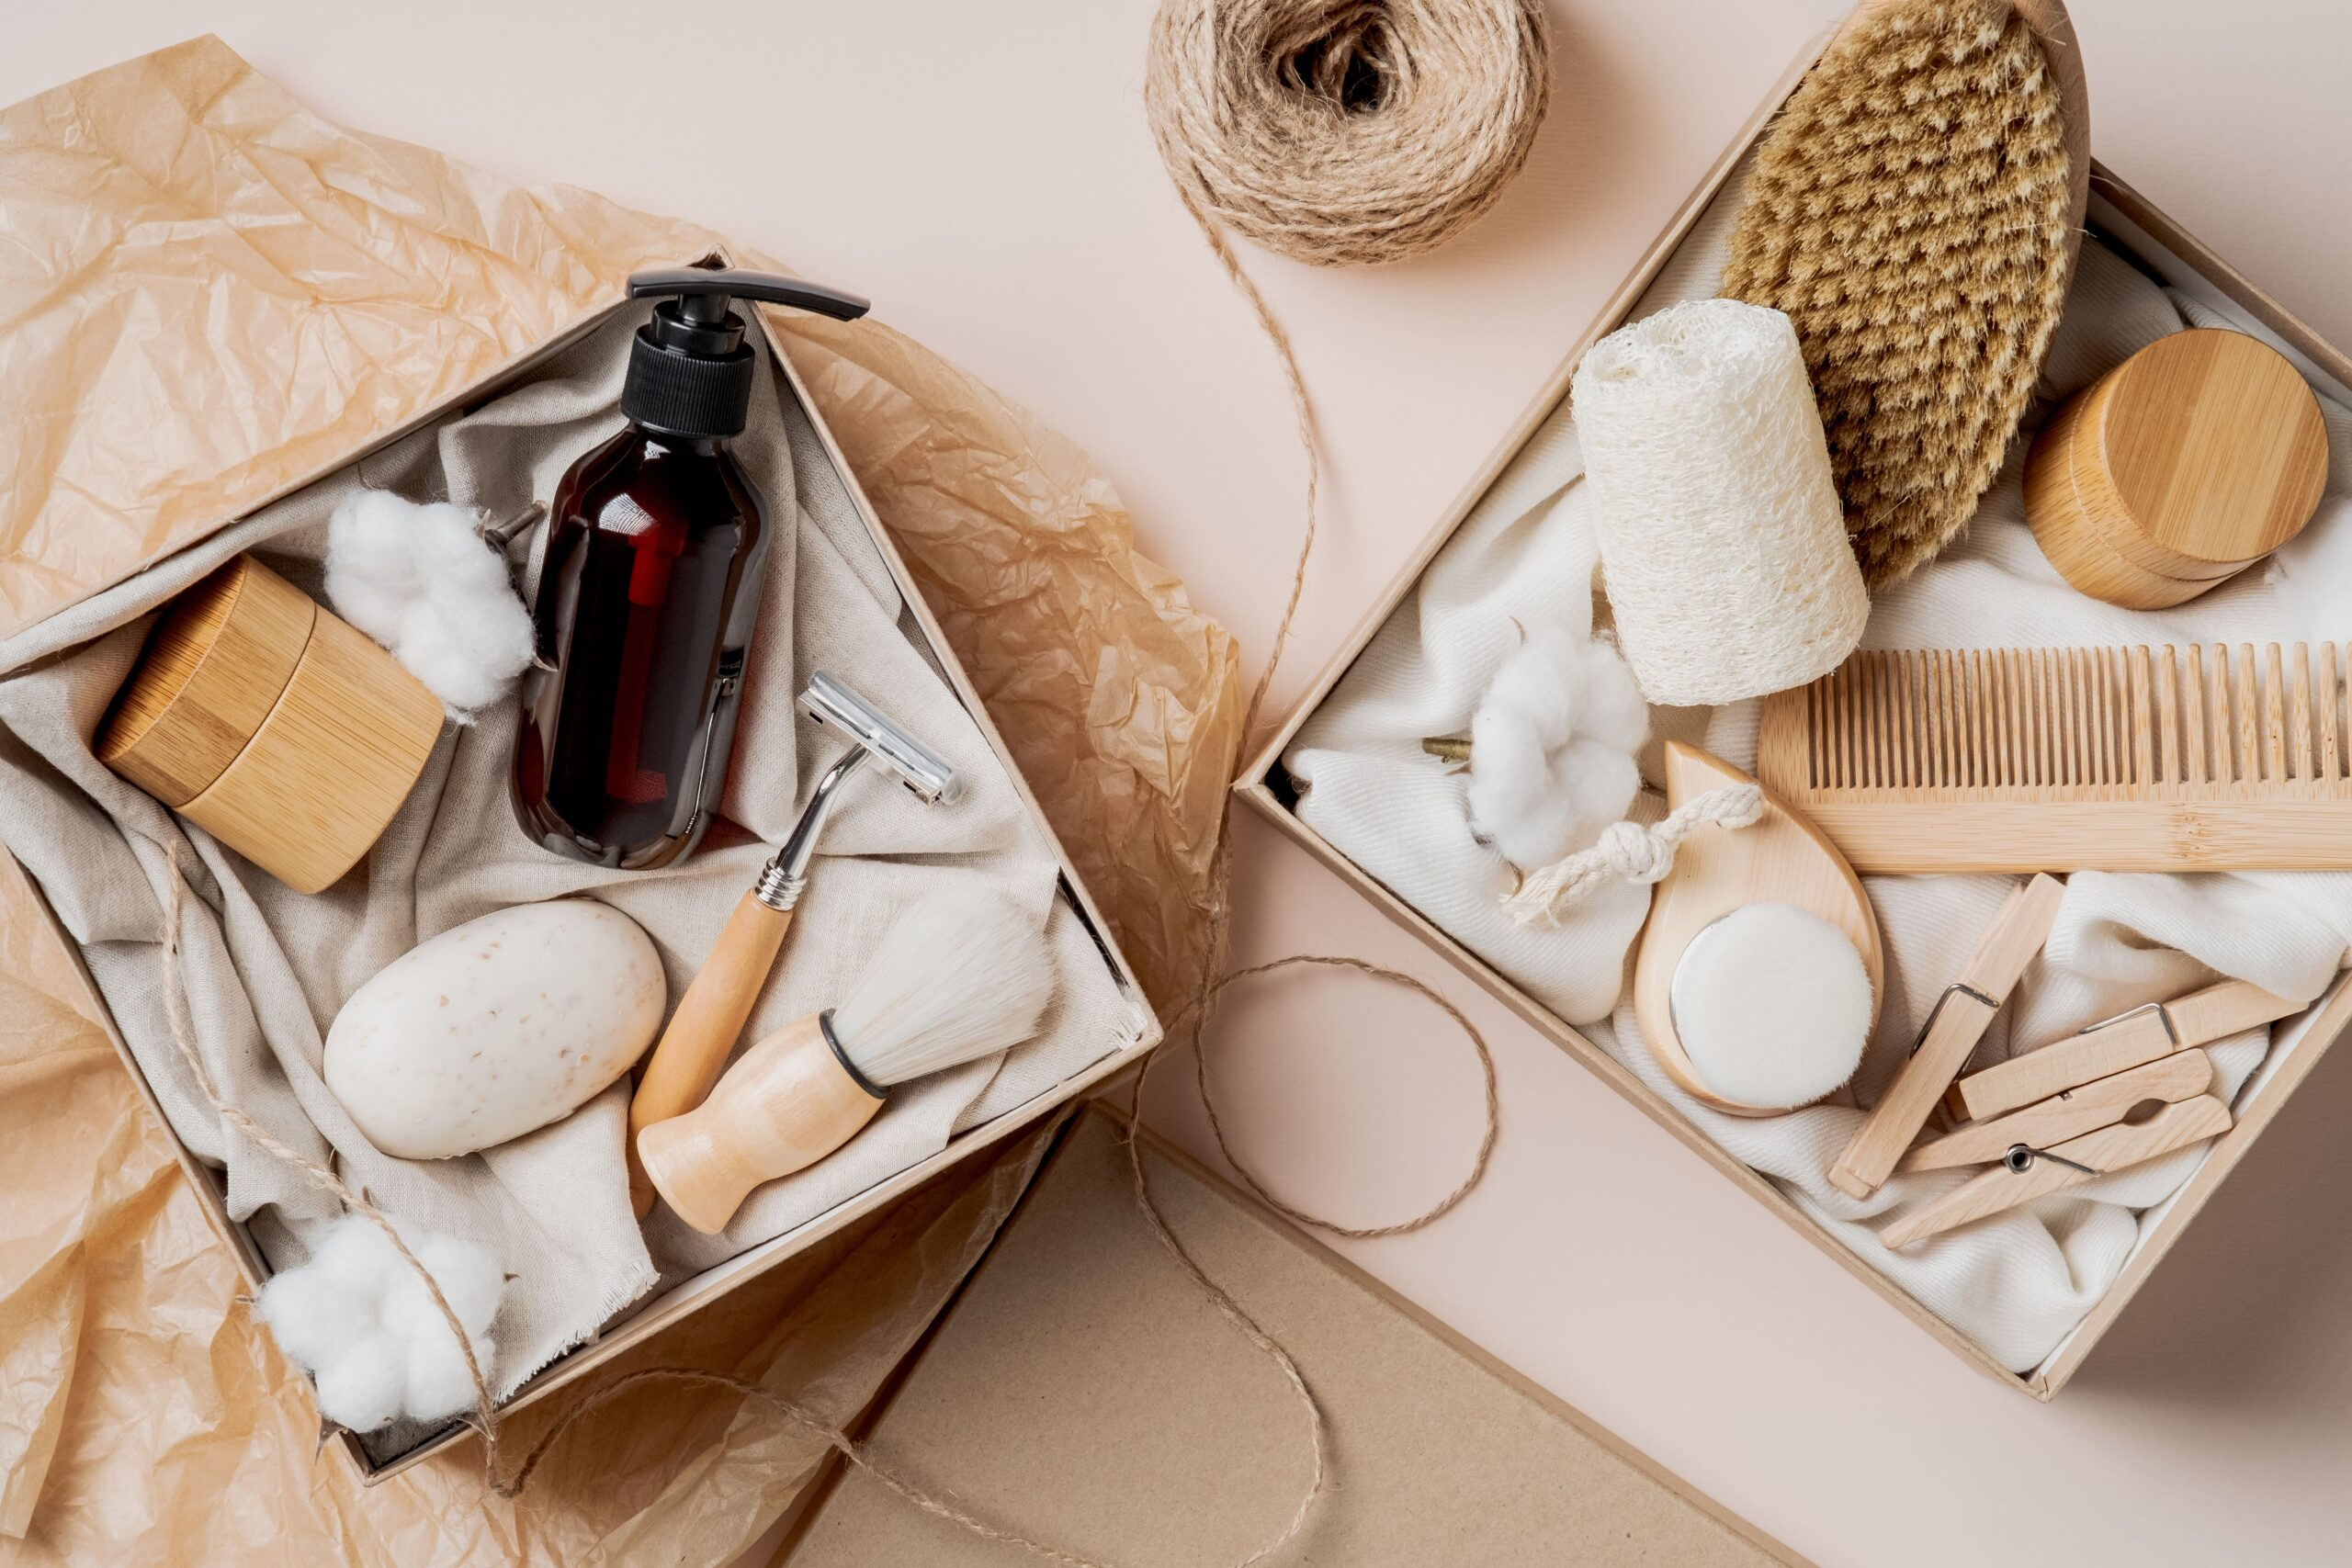 5 reasons why proper product packaging matters for your brand